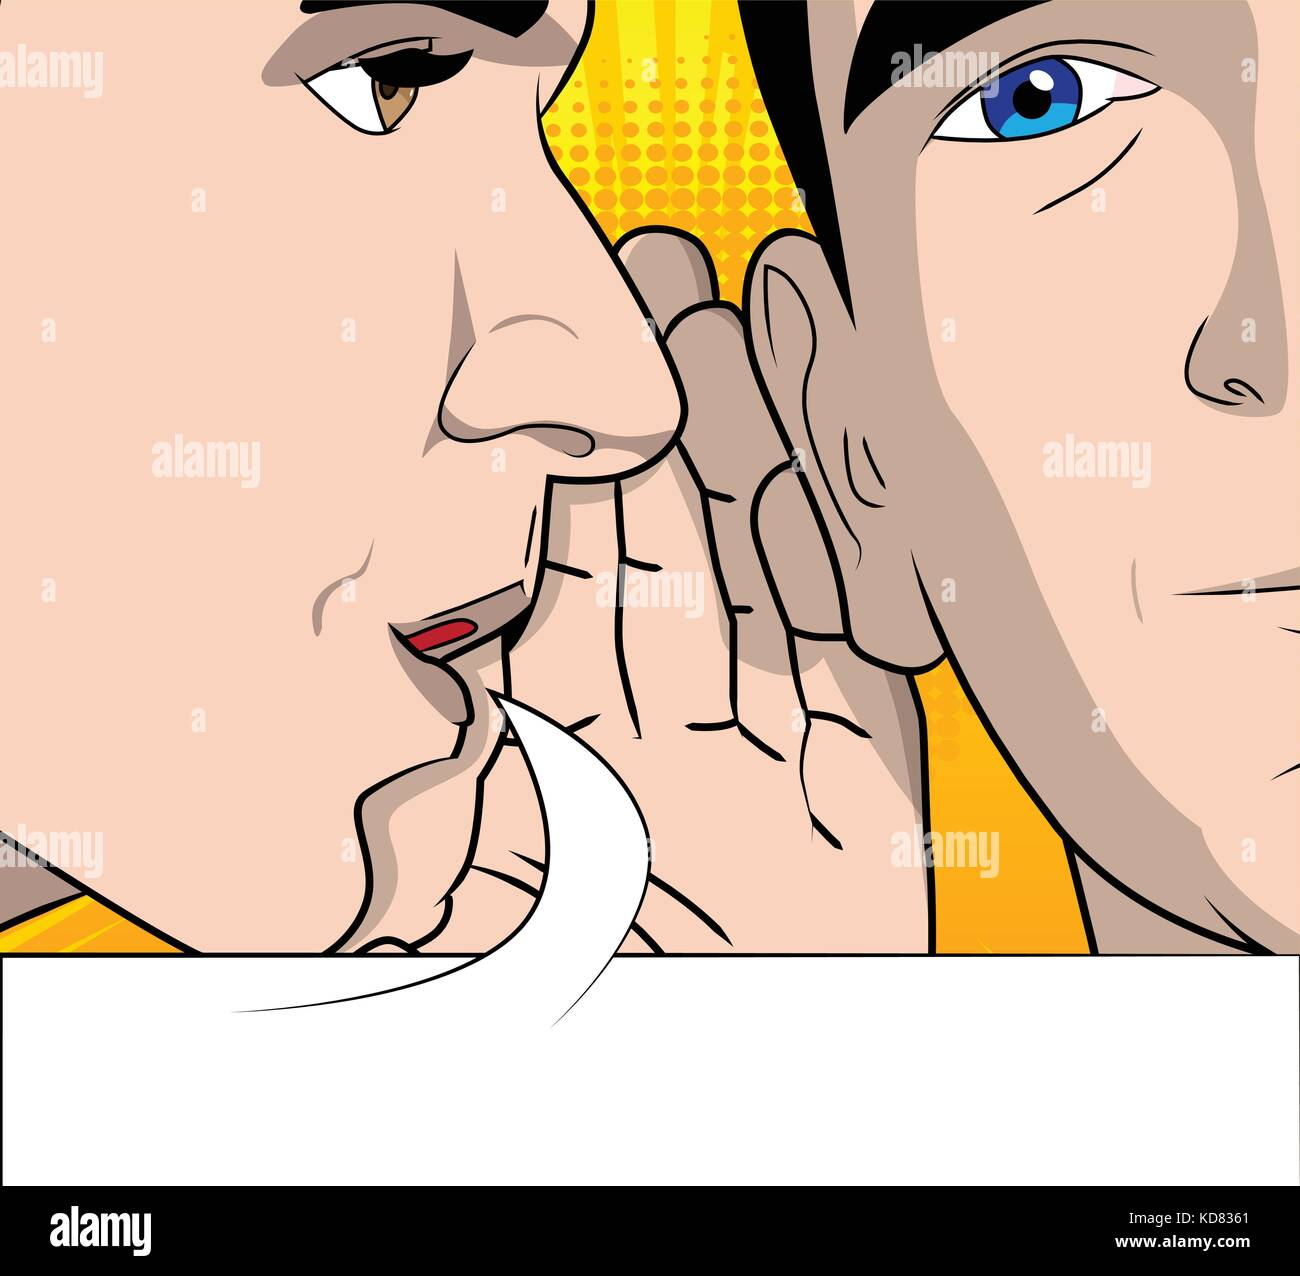 Two men gossiping with speech bubble. Vector cartoon, retro style close up illustration. - Stock Vector